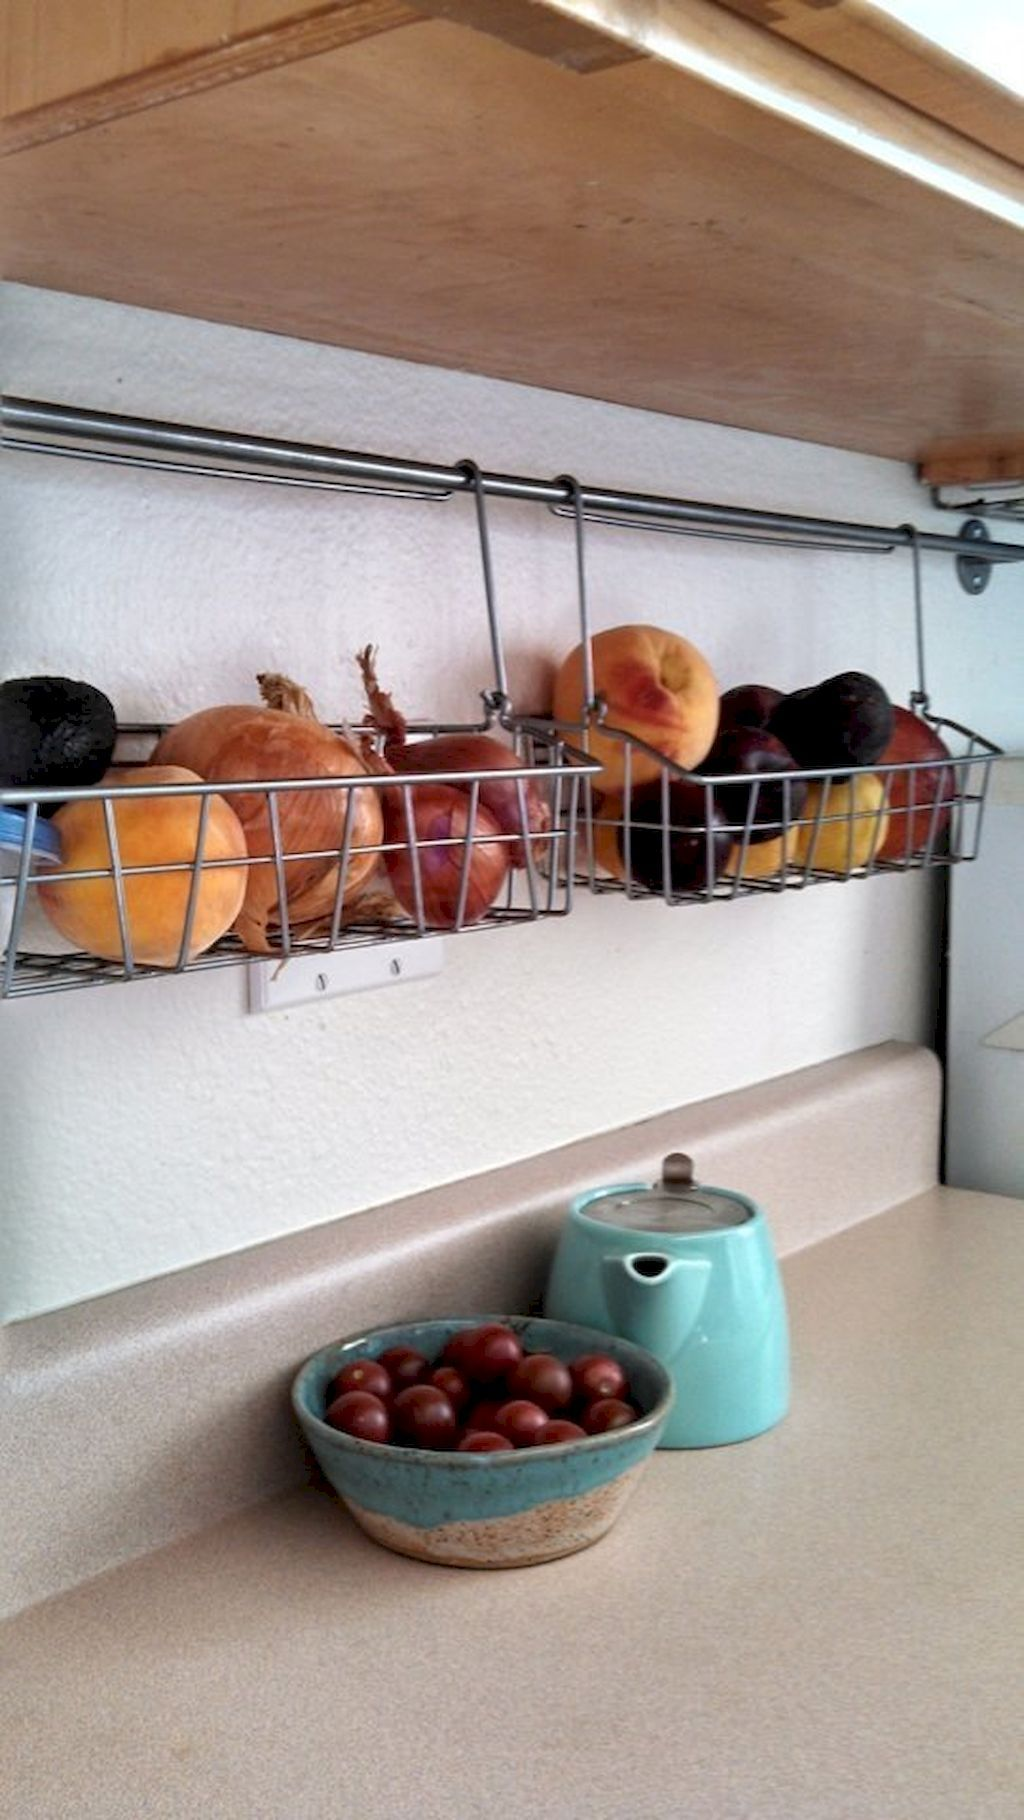 awesome 45 most clever tips kitchen organization ideas https   homevialand com  awesome 45 most clever tips kitchen organization ideas https      rh   pinterest com